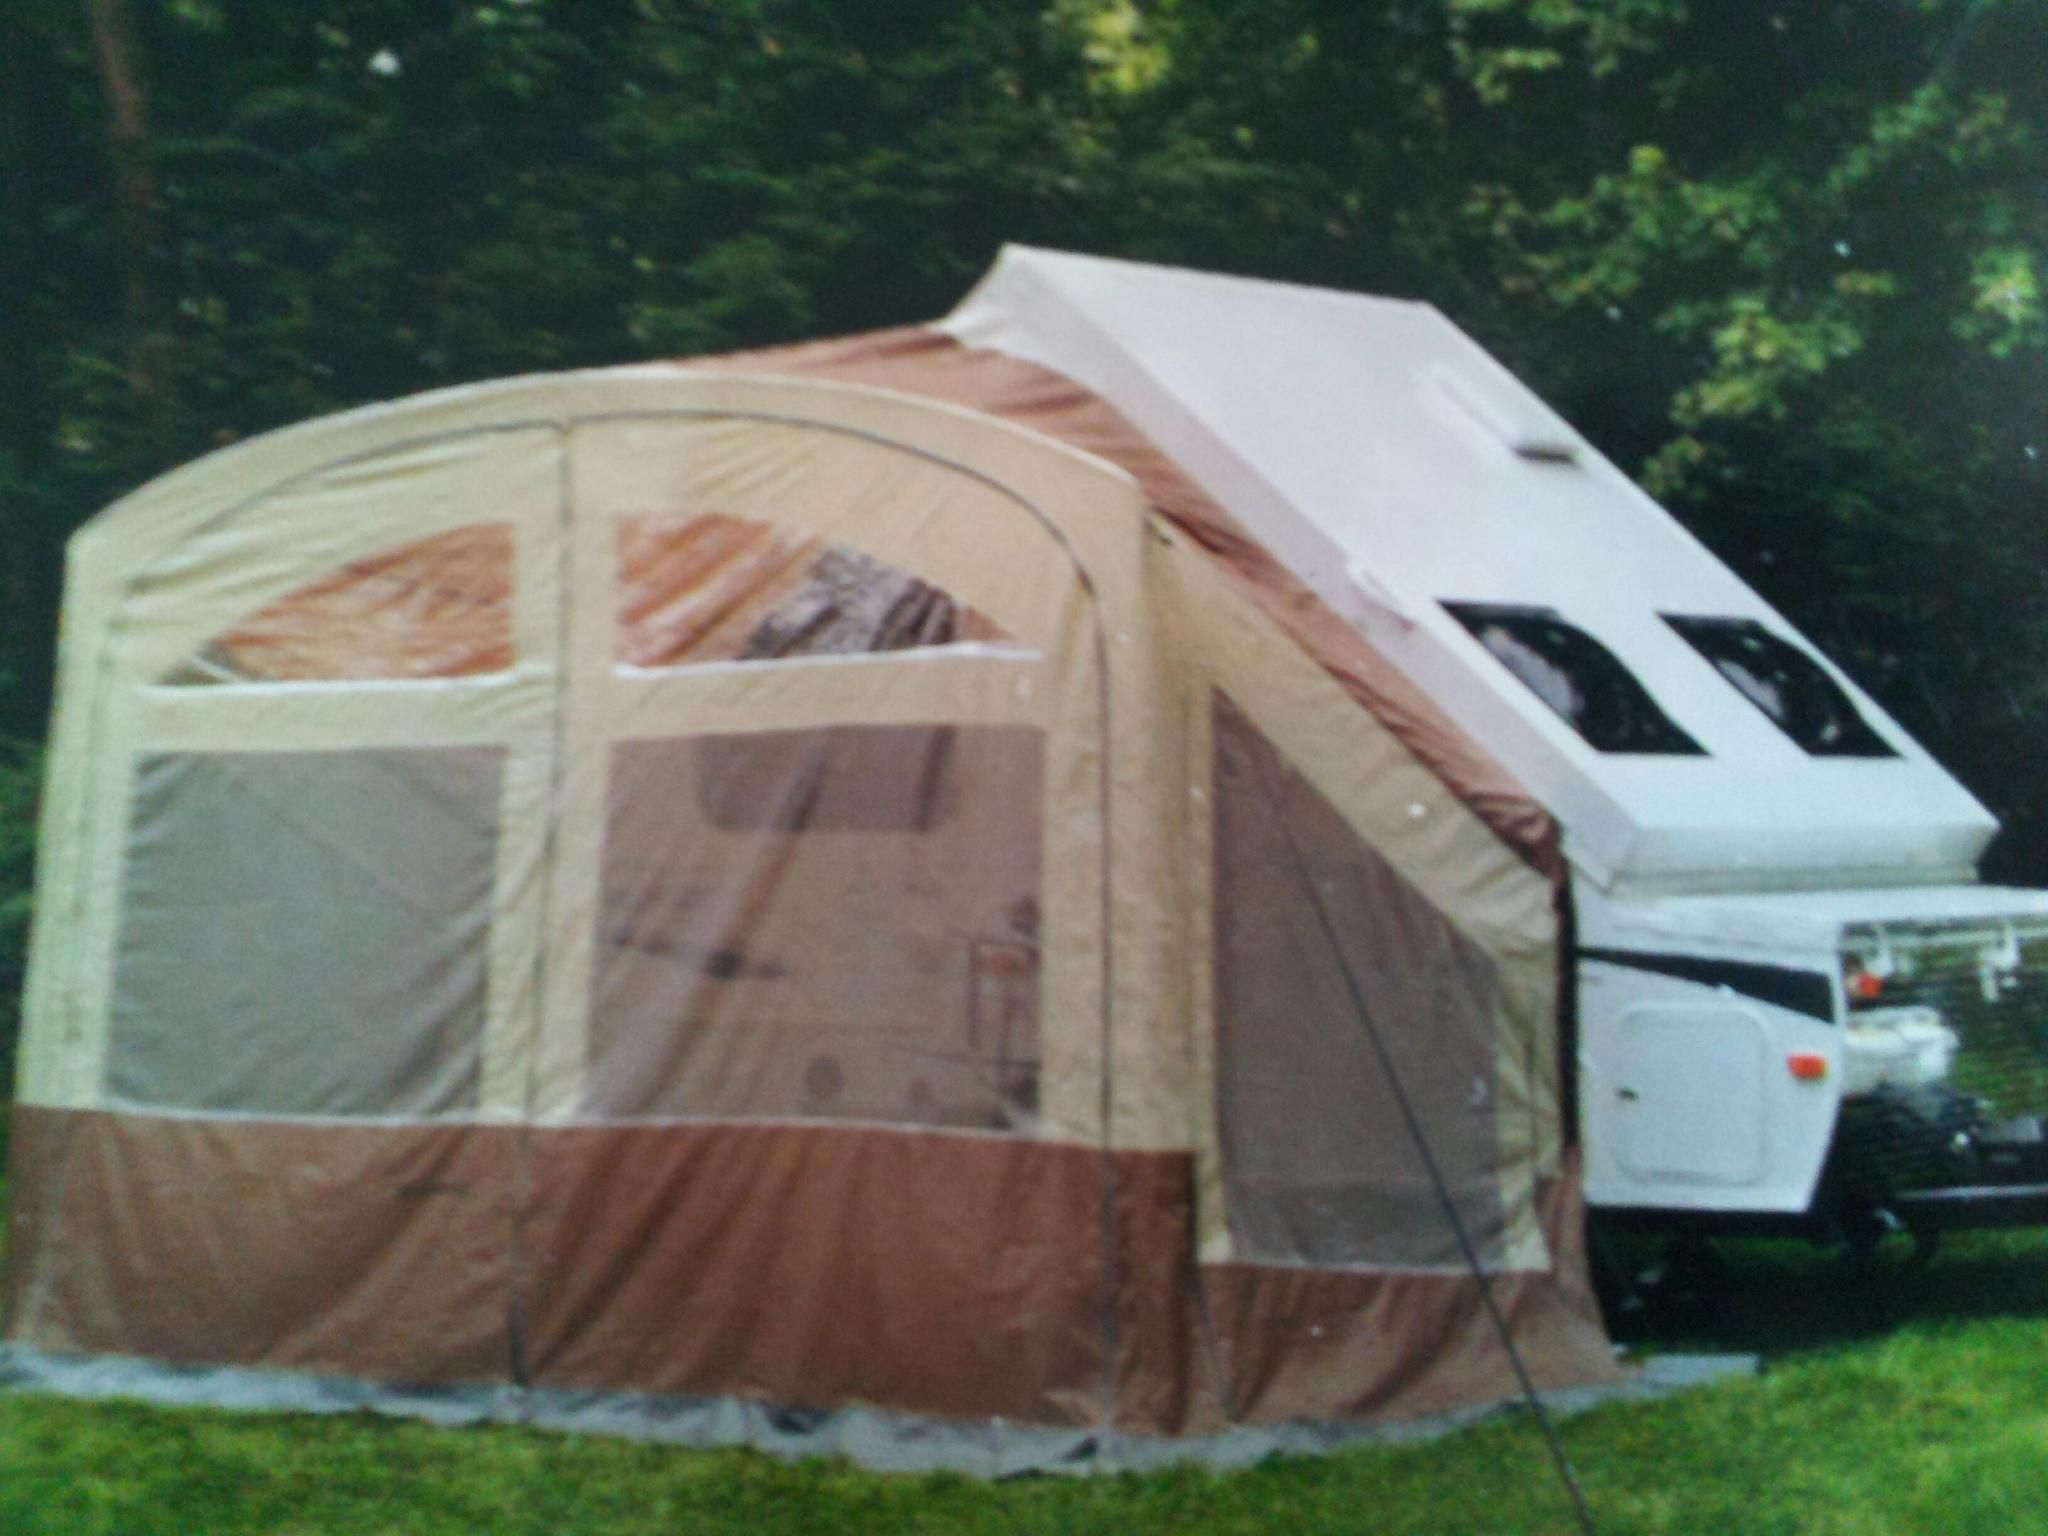 awning camper trailers image full awnings top broma hard for hardtop me